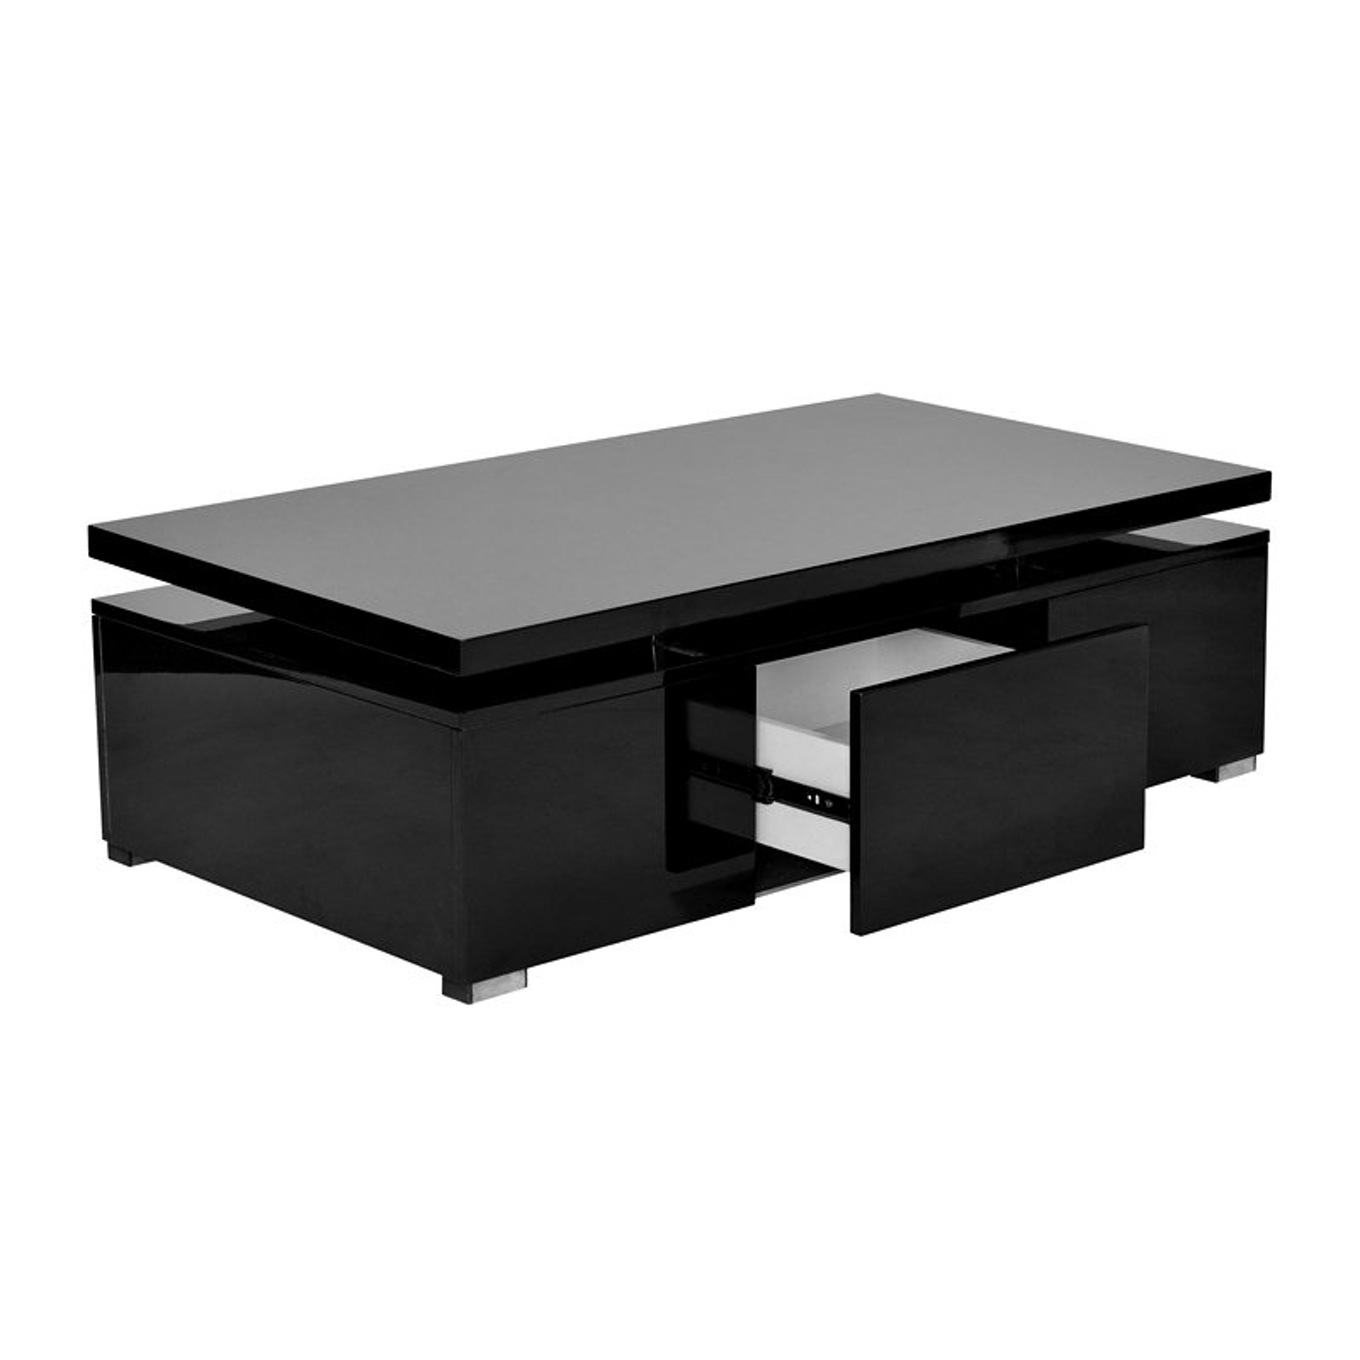 petite table basse noire id es de d coration int rieure. Black Bedroom Furniture Sets. Home Design Ideas